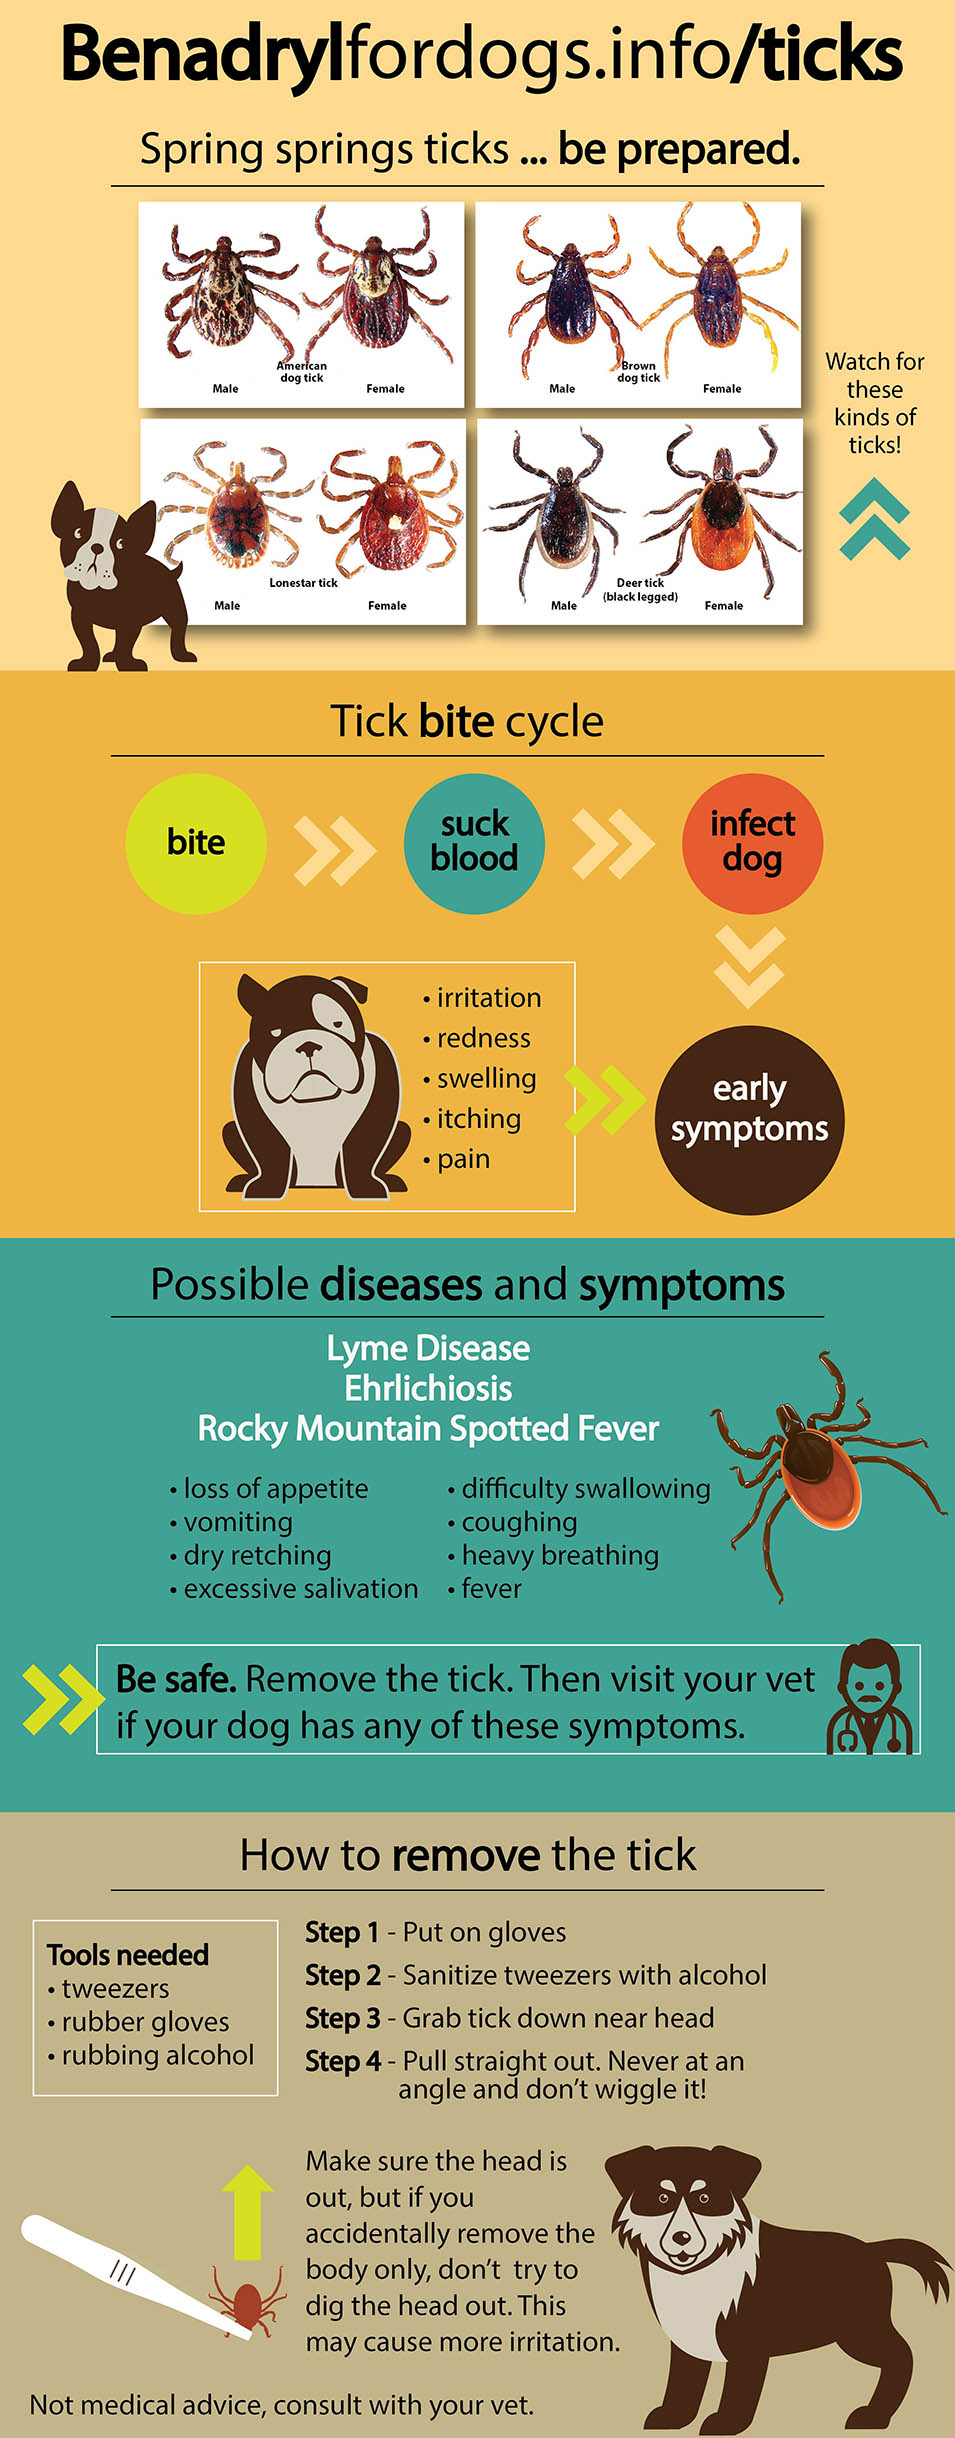 Complete Dog Tick Removal Guide http://benadrylfordogs.info/ticks